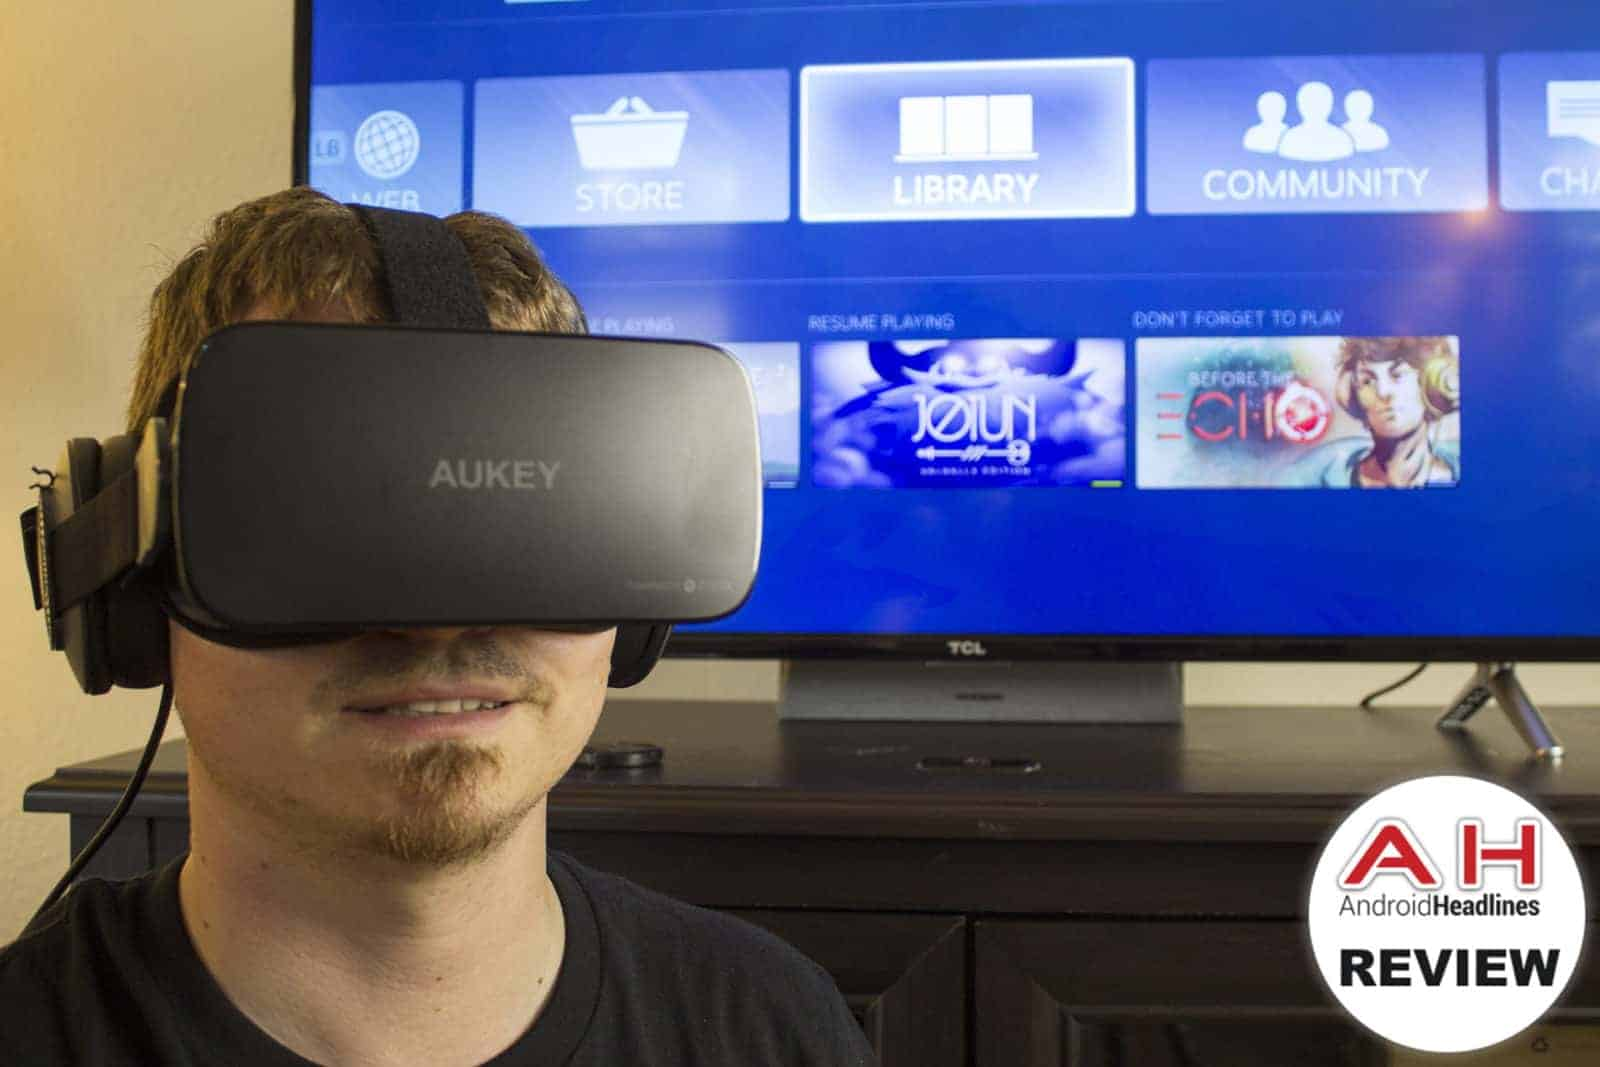 aukey cortex 4k vr headset review - ultra high definition vr